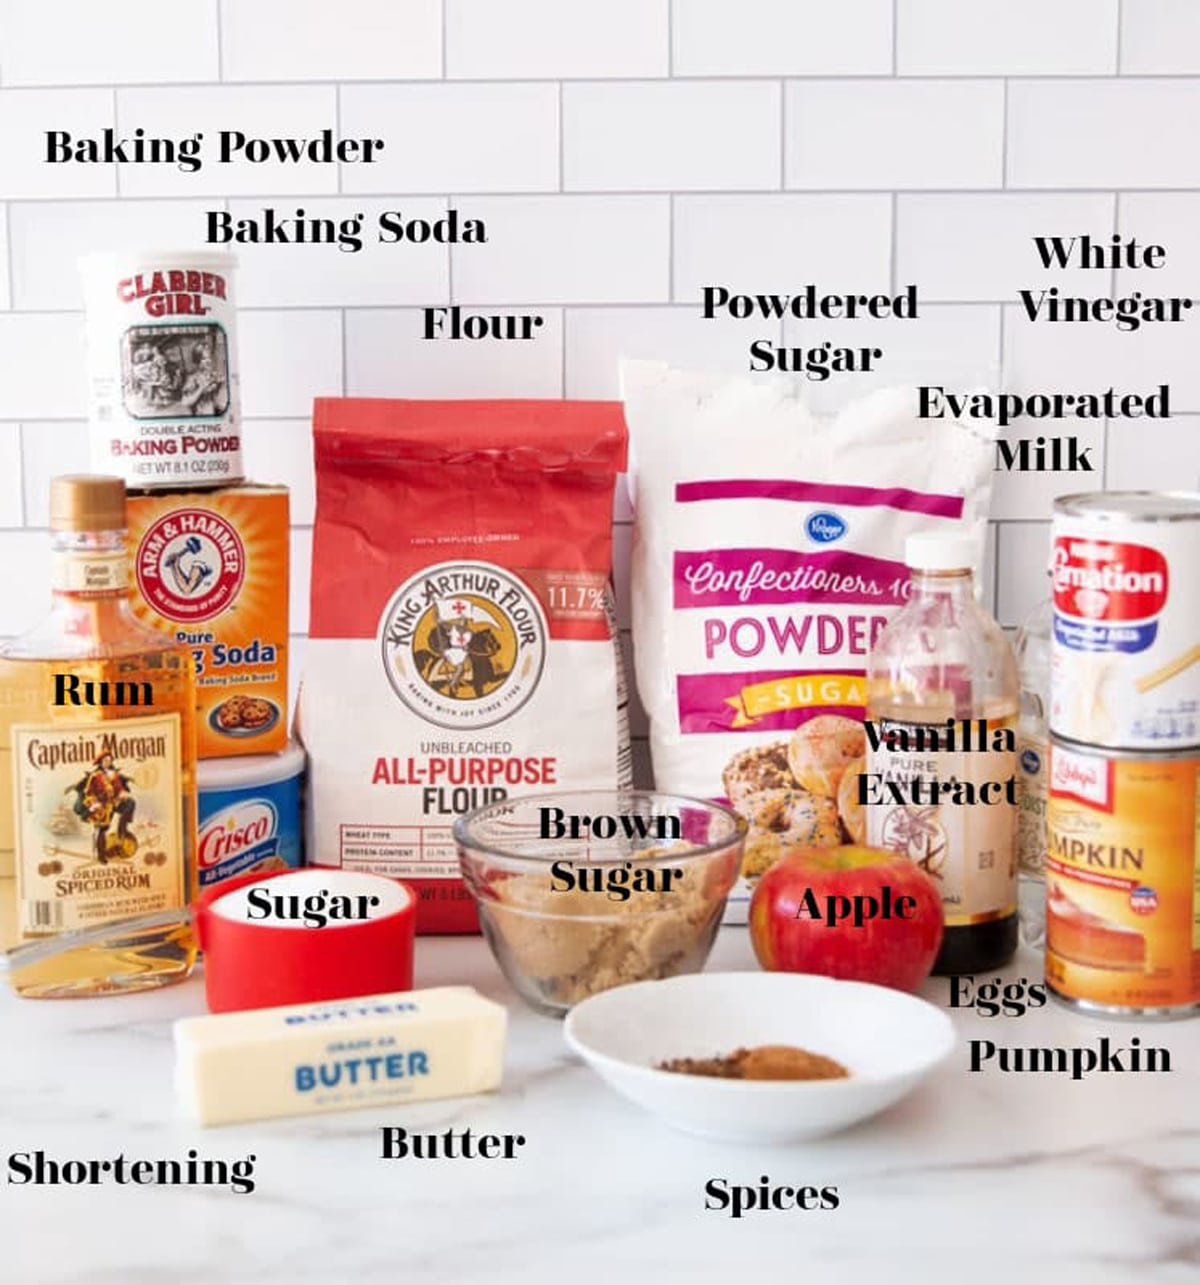 Flour, baking soda and powder, rum, powdered sugar, pumpkin puree, evaporated milk, vanilla extract, butter, eggs, spices on counter.